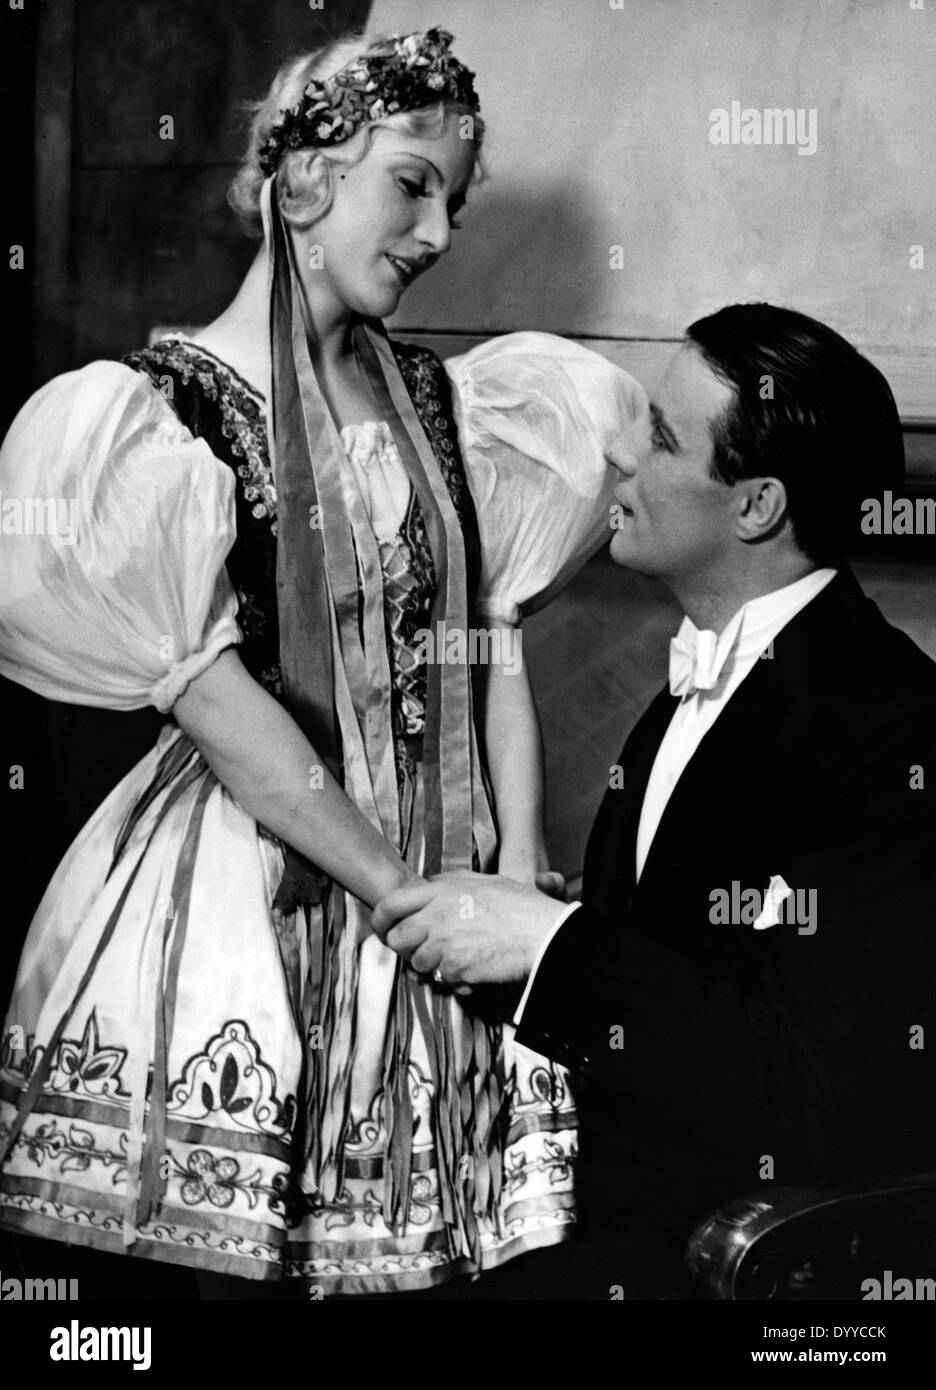 Edith d'Amara and Johannes Heesters, 1935 - Stock Image